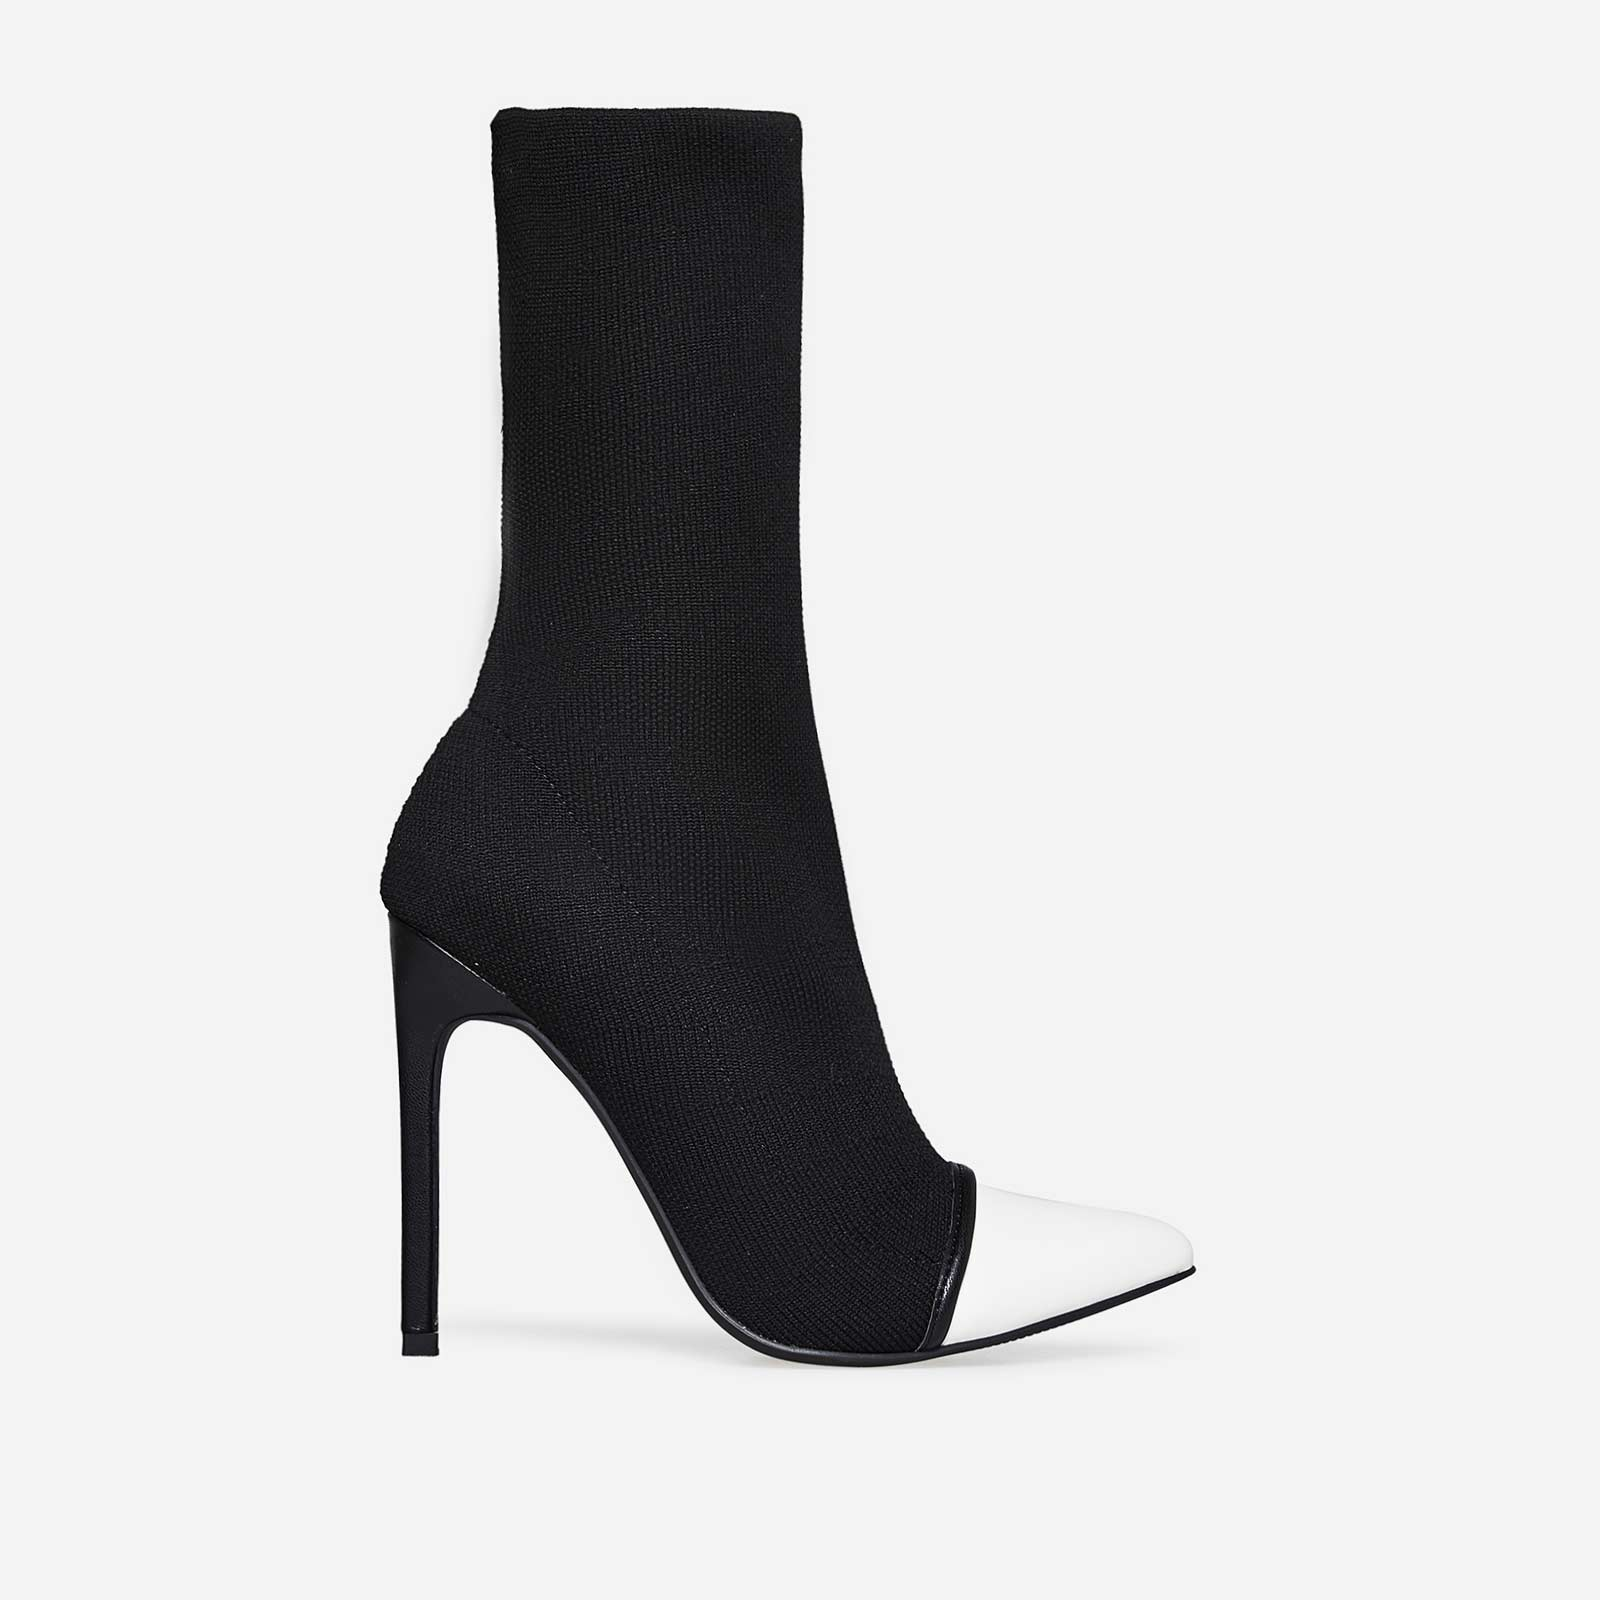 Celsa Two Tone Pointed Toe Sock Boot In Black Knit